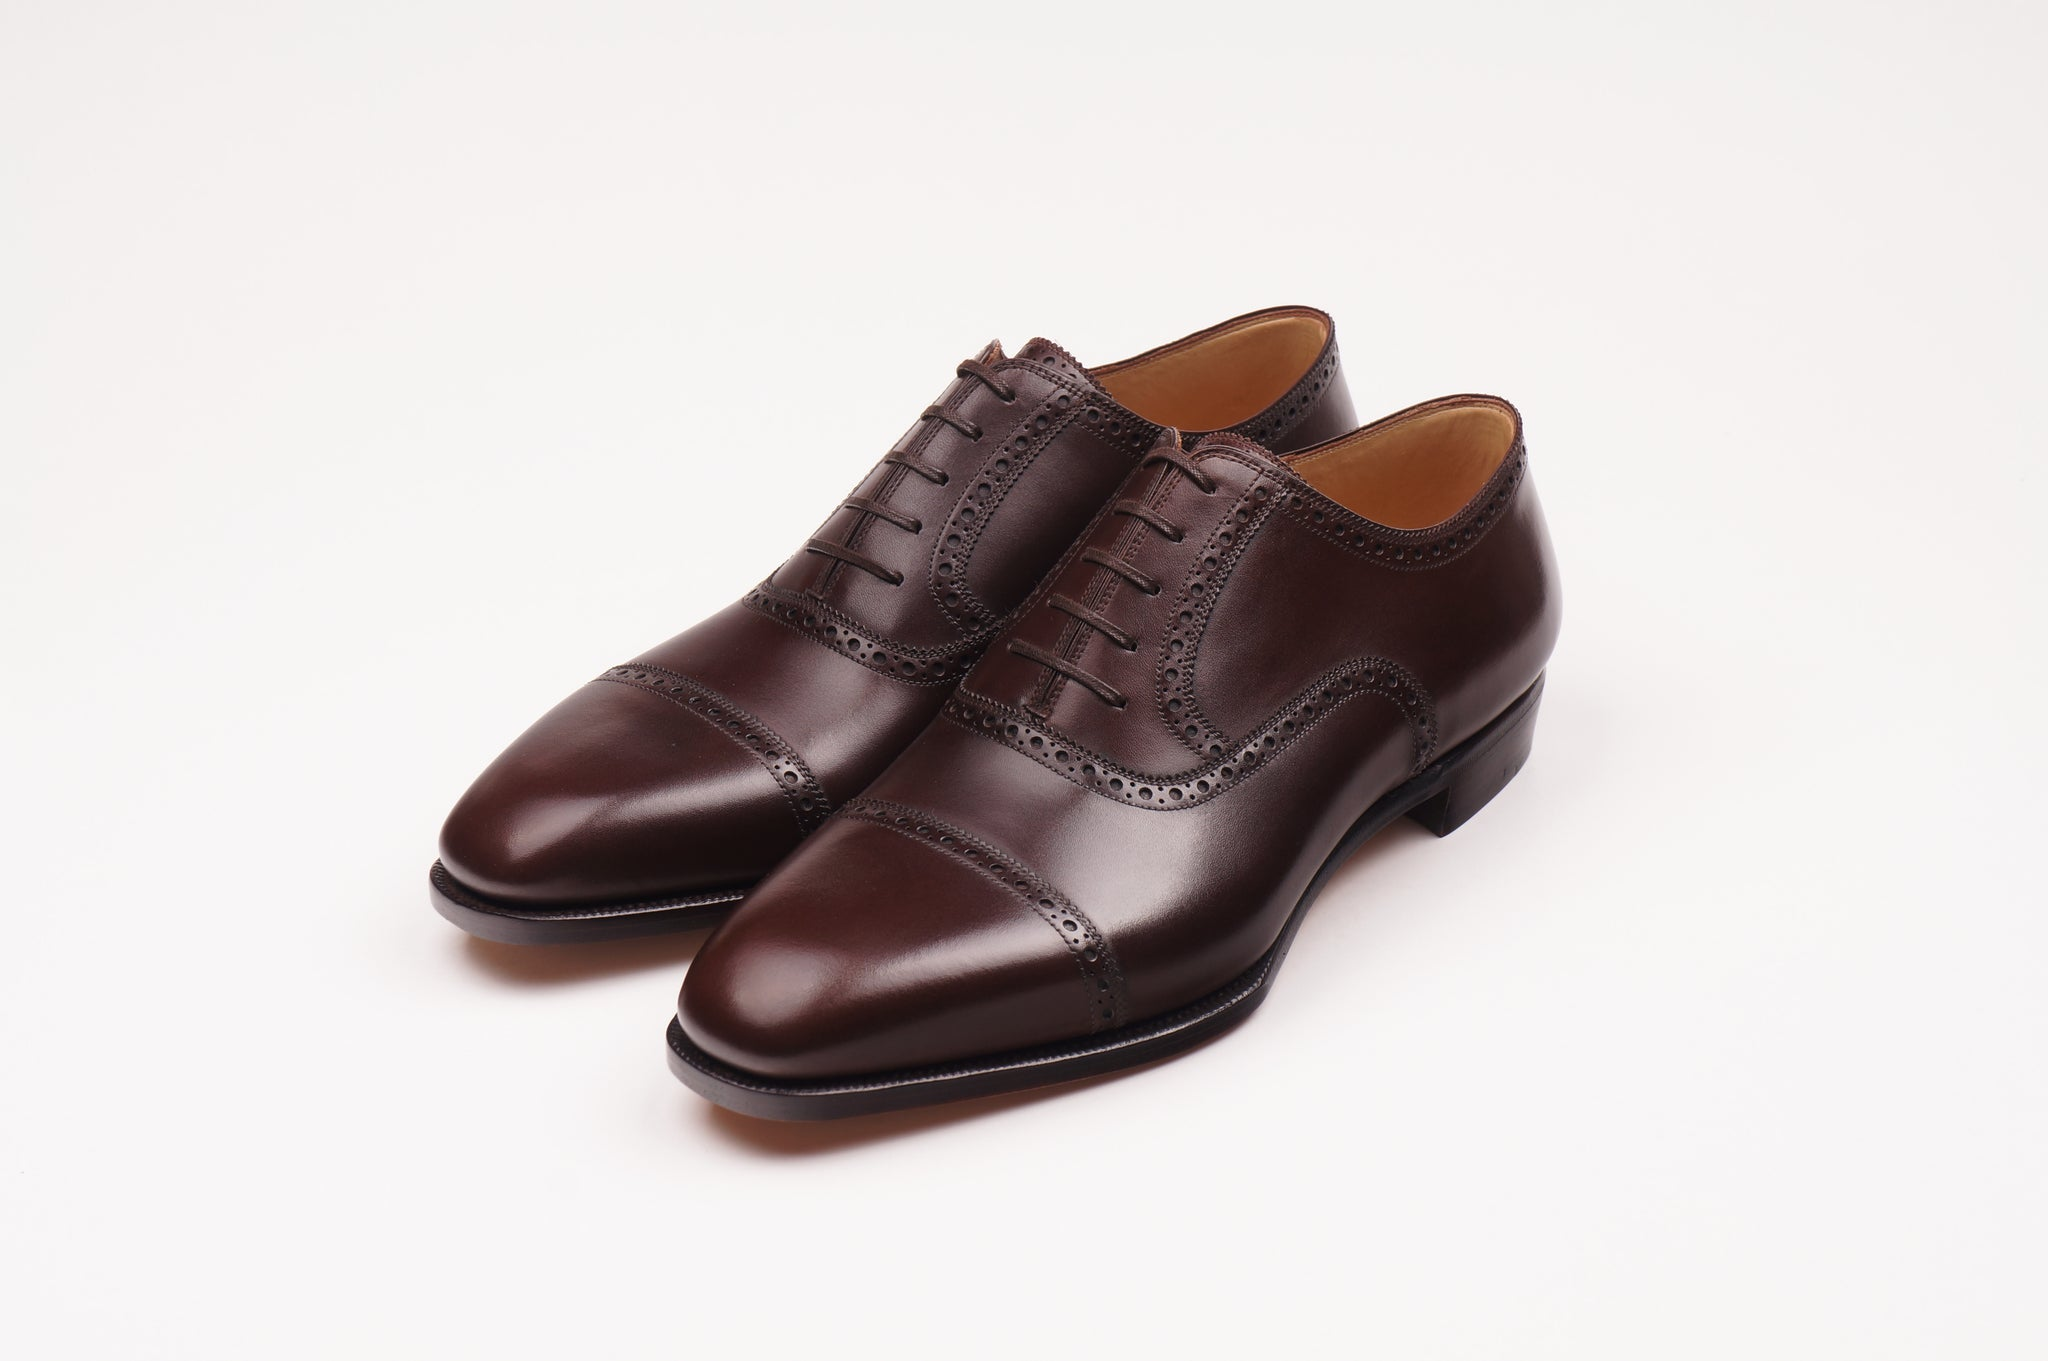 STEFANO BEMER E6620 OXFORD IN BROWN BOX CALF